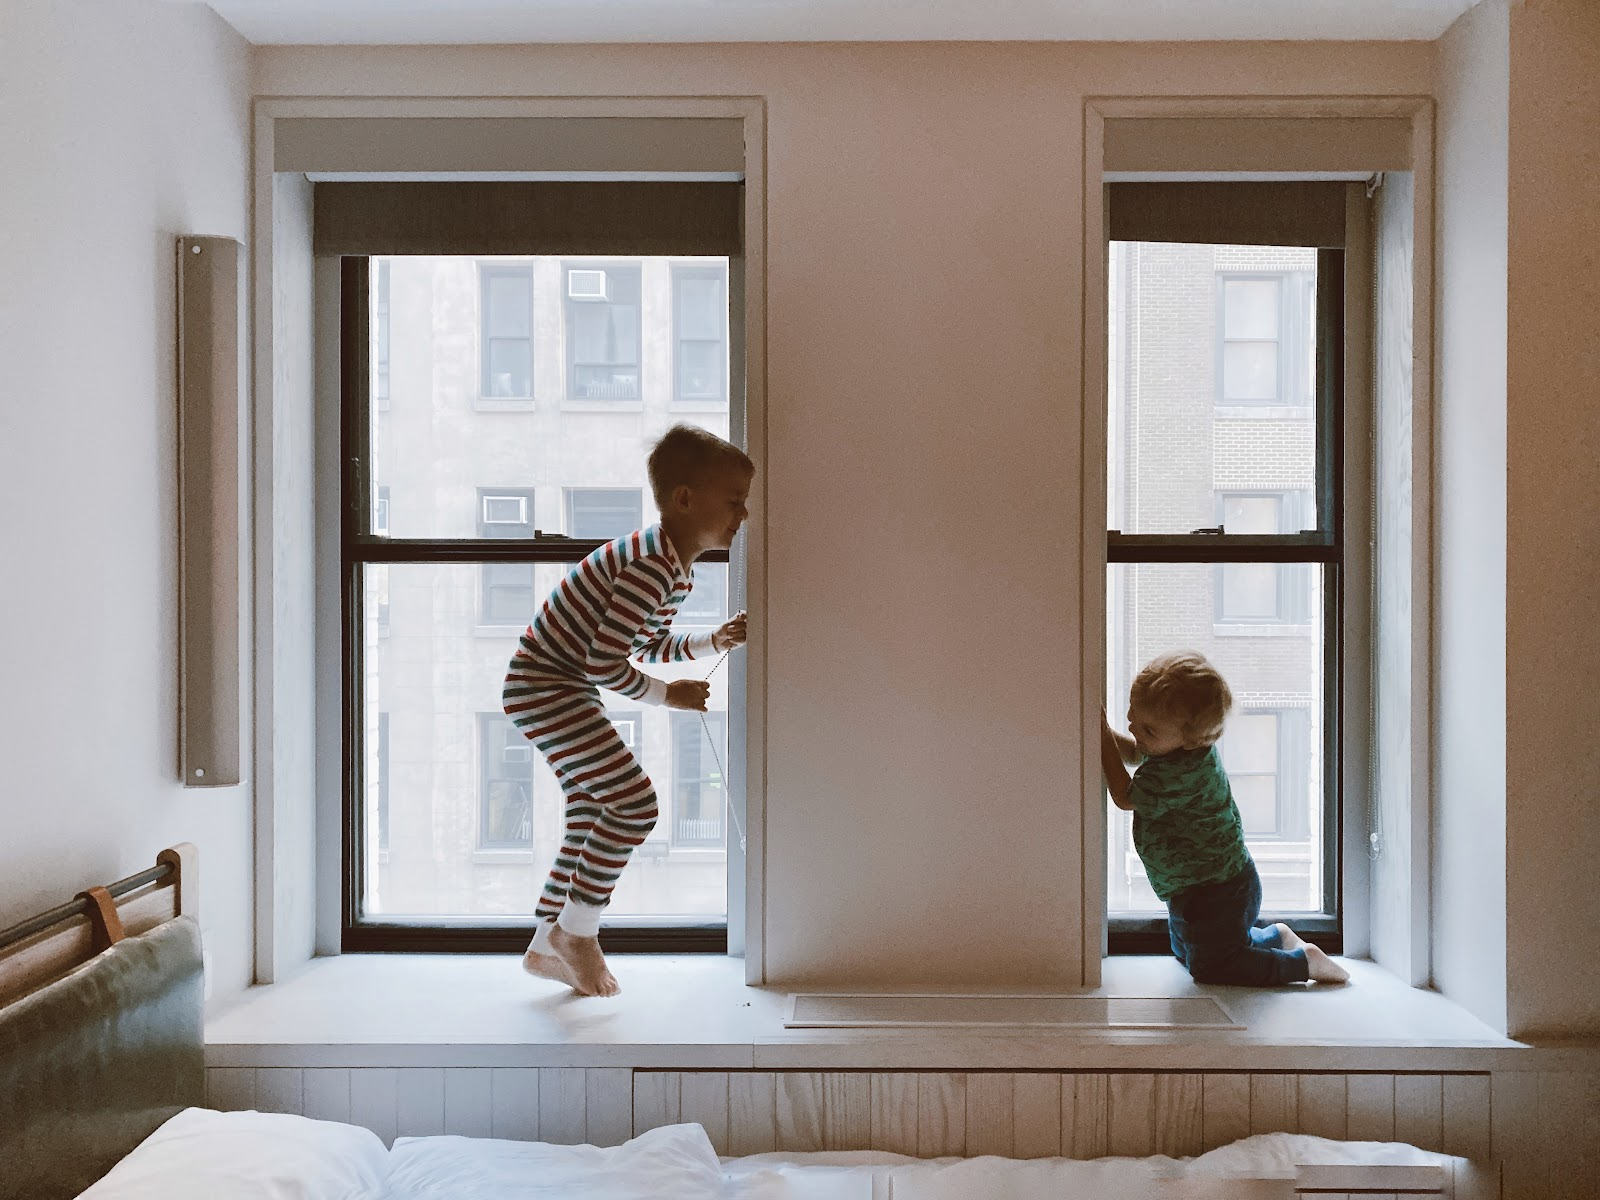 Two boys play in the window sills of their new home